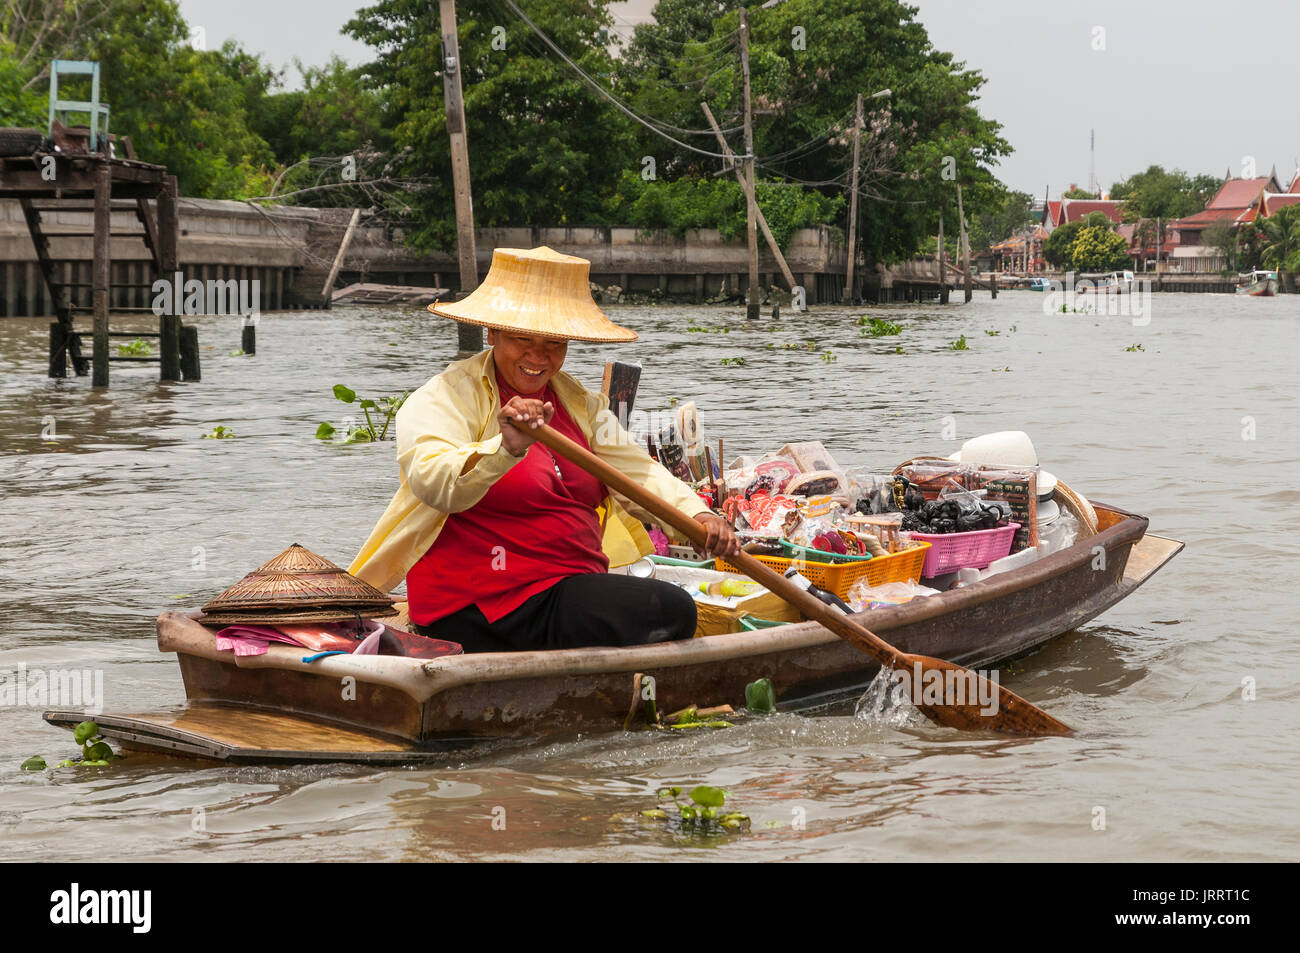 Waterborne souvenir vendor on the Khlongs in Thonburi, Bangkok, Thailand - Stock Image